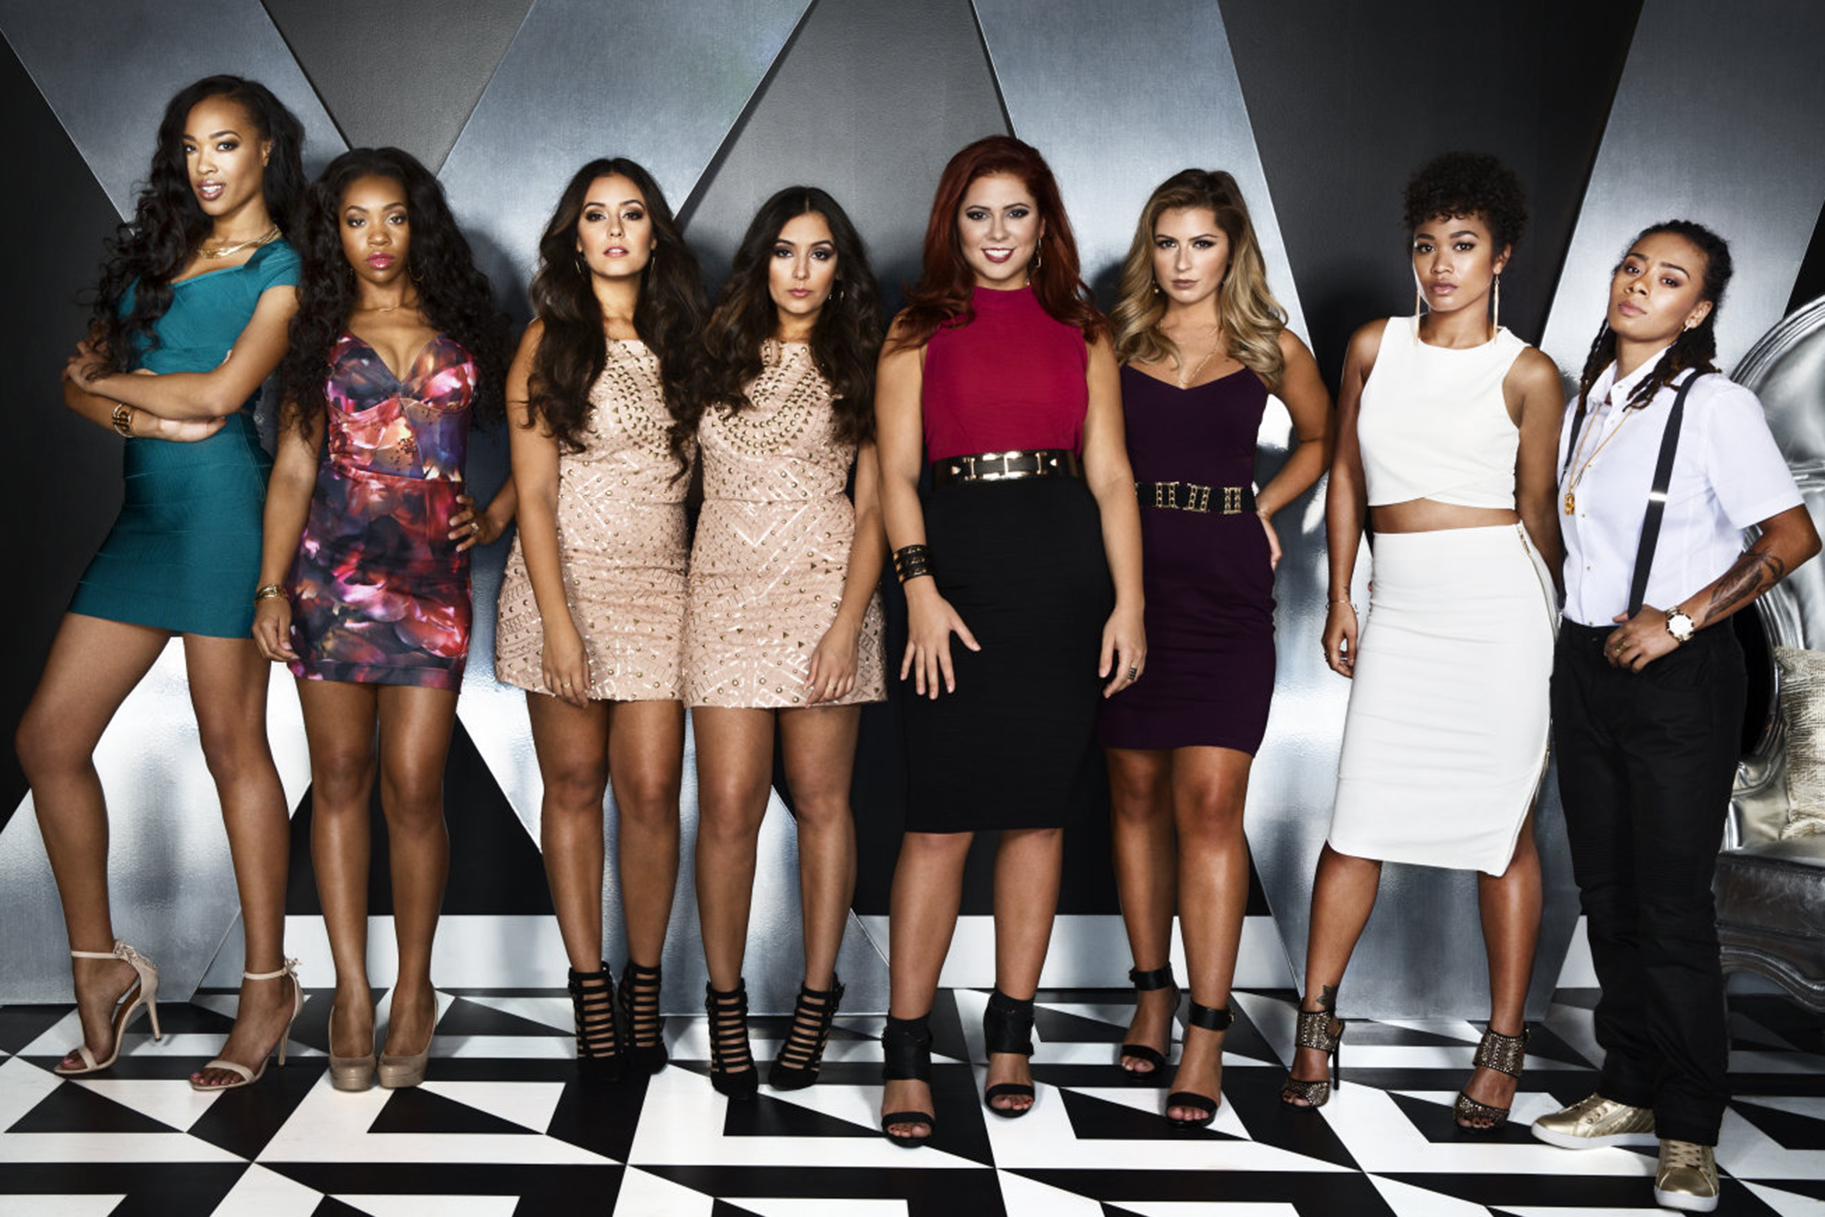 'Bad Girls Club: Twisted Sisters' se estrena el martes 15 de marzo a las 8 / 7c